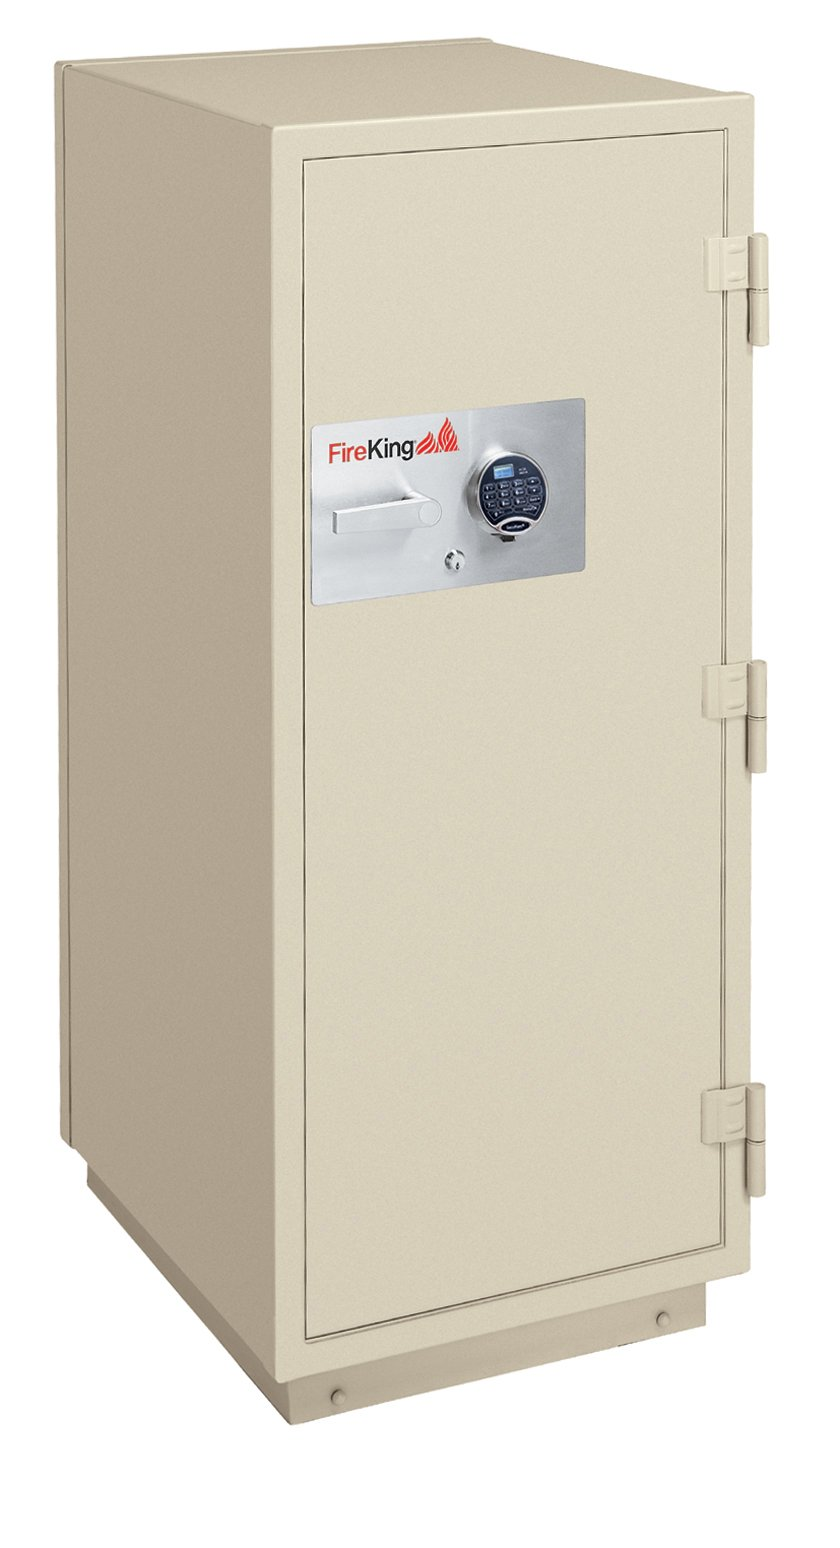 Fireking 2-Hour Fire with Impact & Burglary Rated Safe, 60.5'' H x 25.5'' W x 28.88'' D/11.2 cu. ft., Taupe